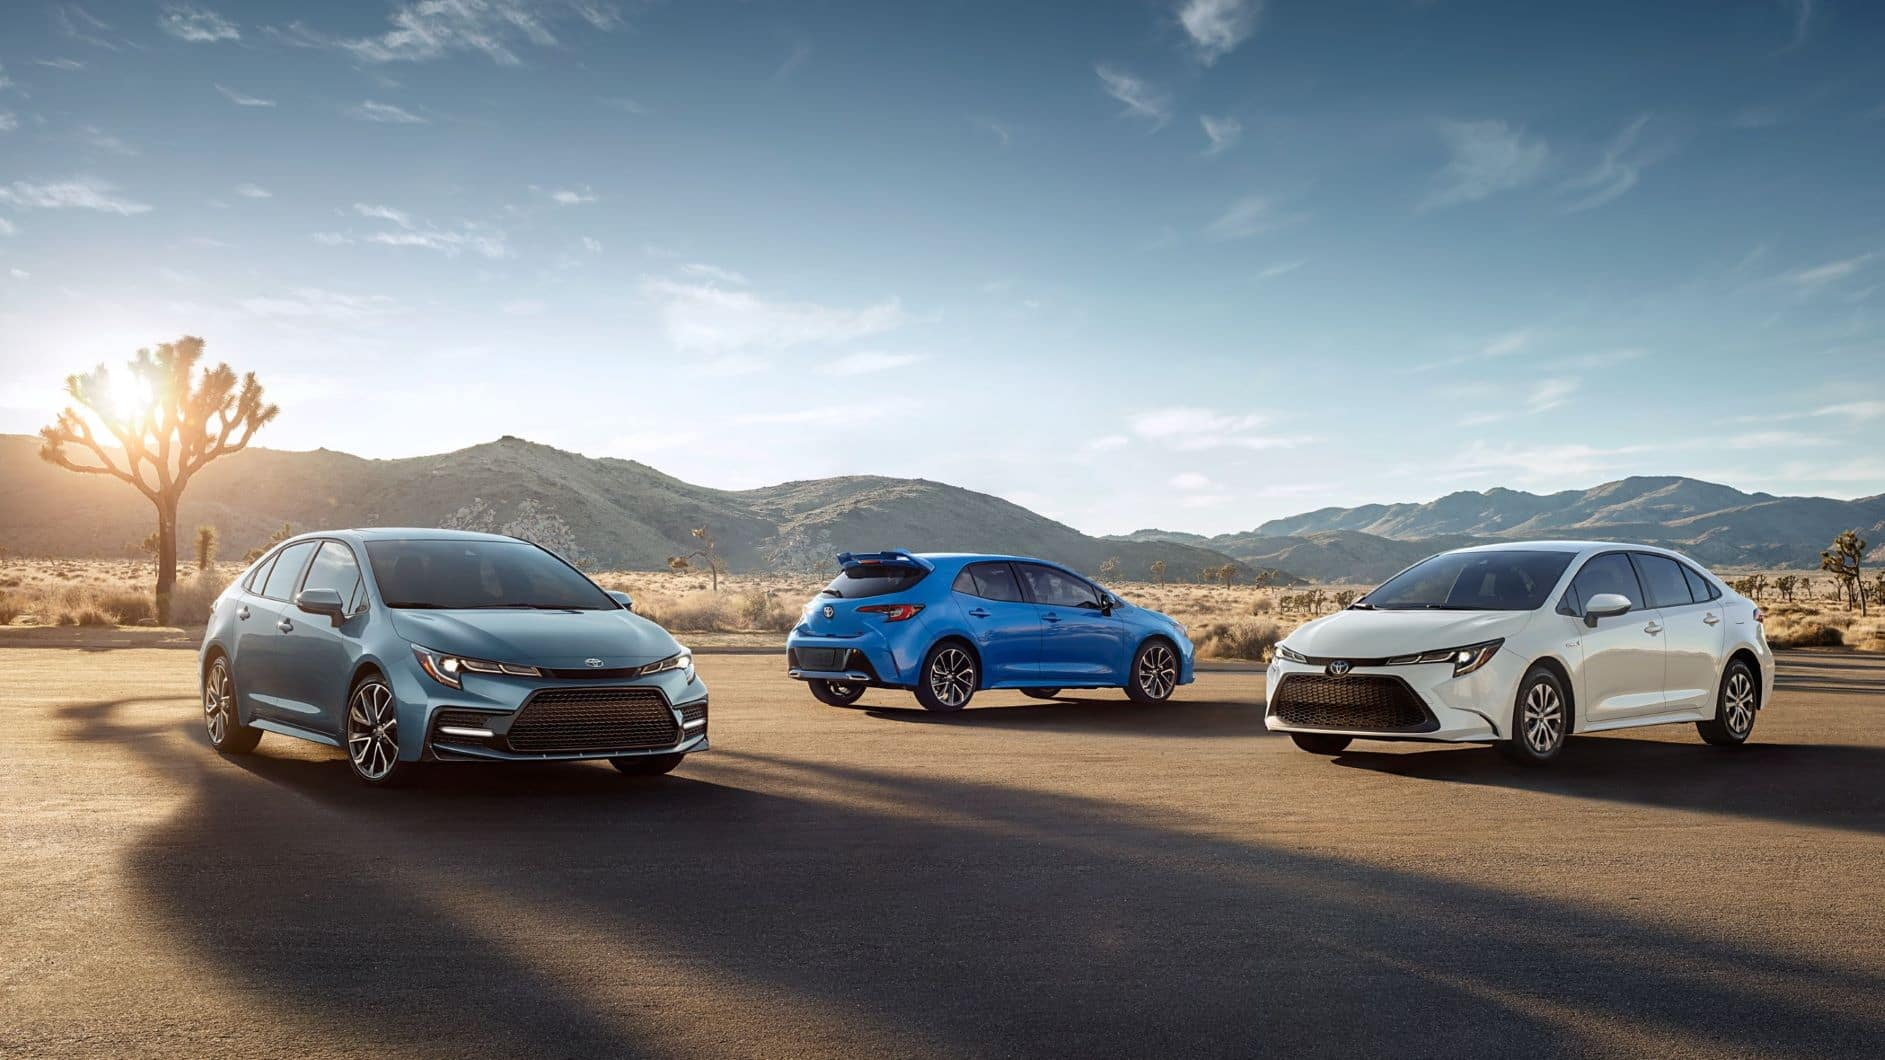 Click here to learn more about the latest safety features and more in the 2021 Toyota Corolla.